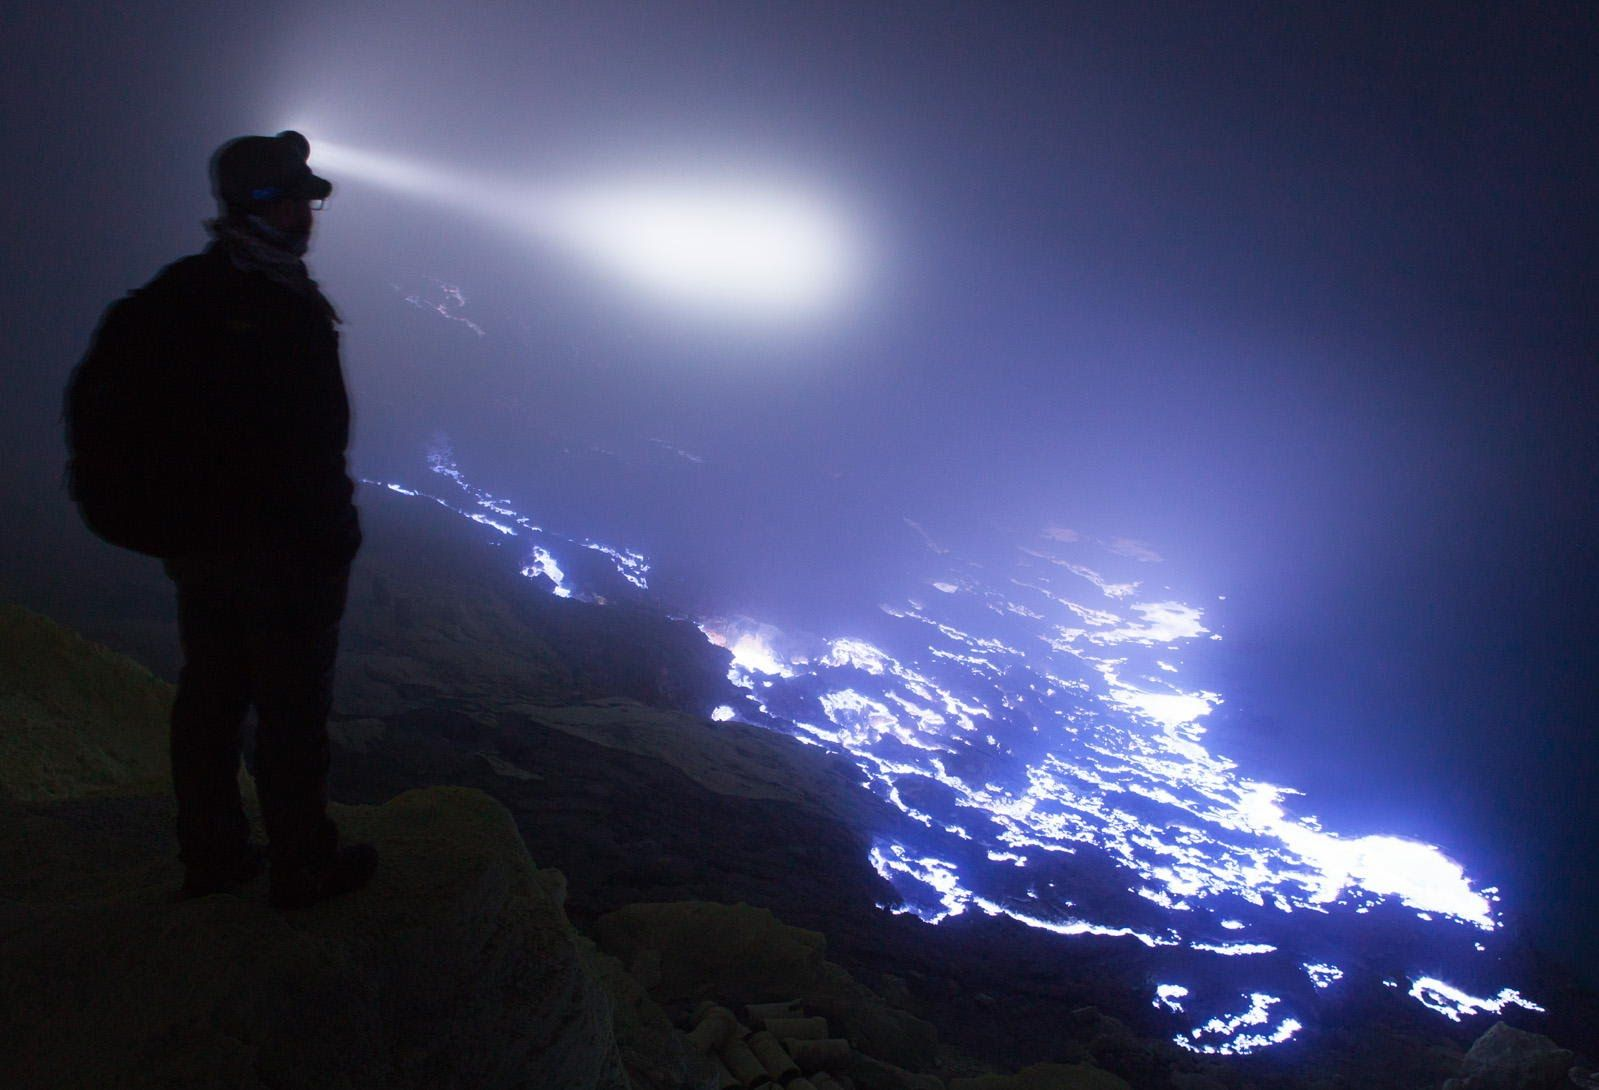 Kawah Ijen Volcano With Glowing Blue Lava In Indonesia - Incredible neon blue lava flames erupt volcano